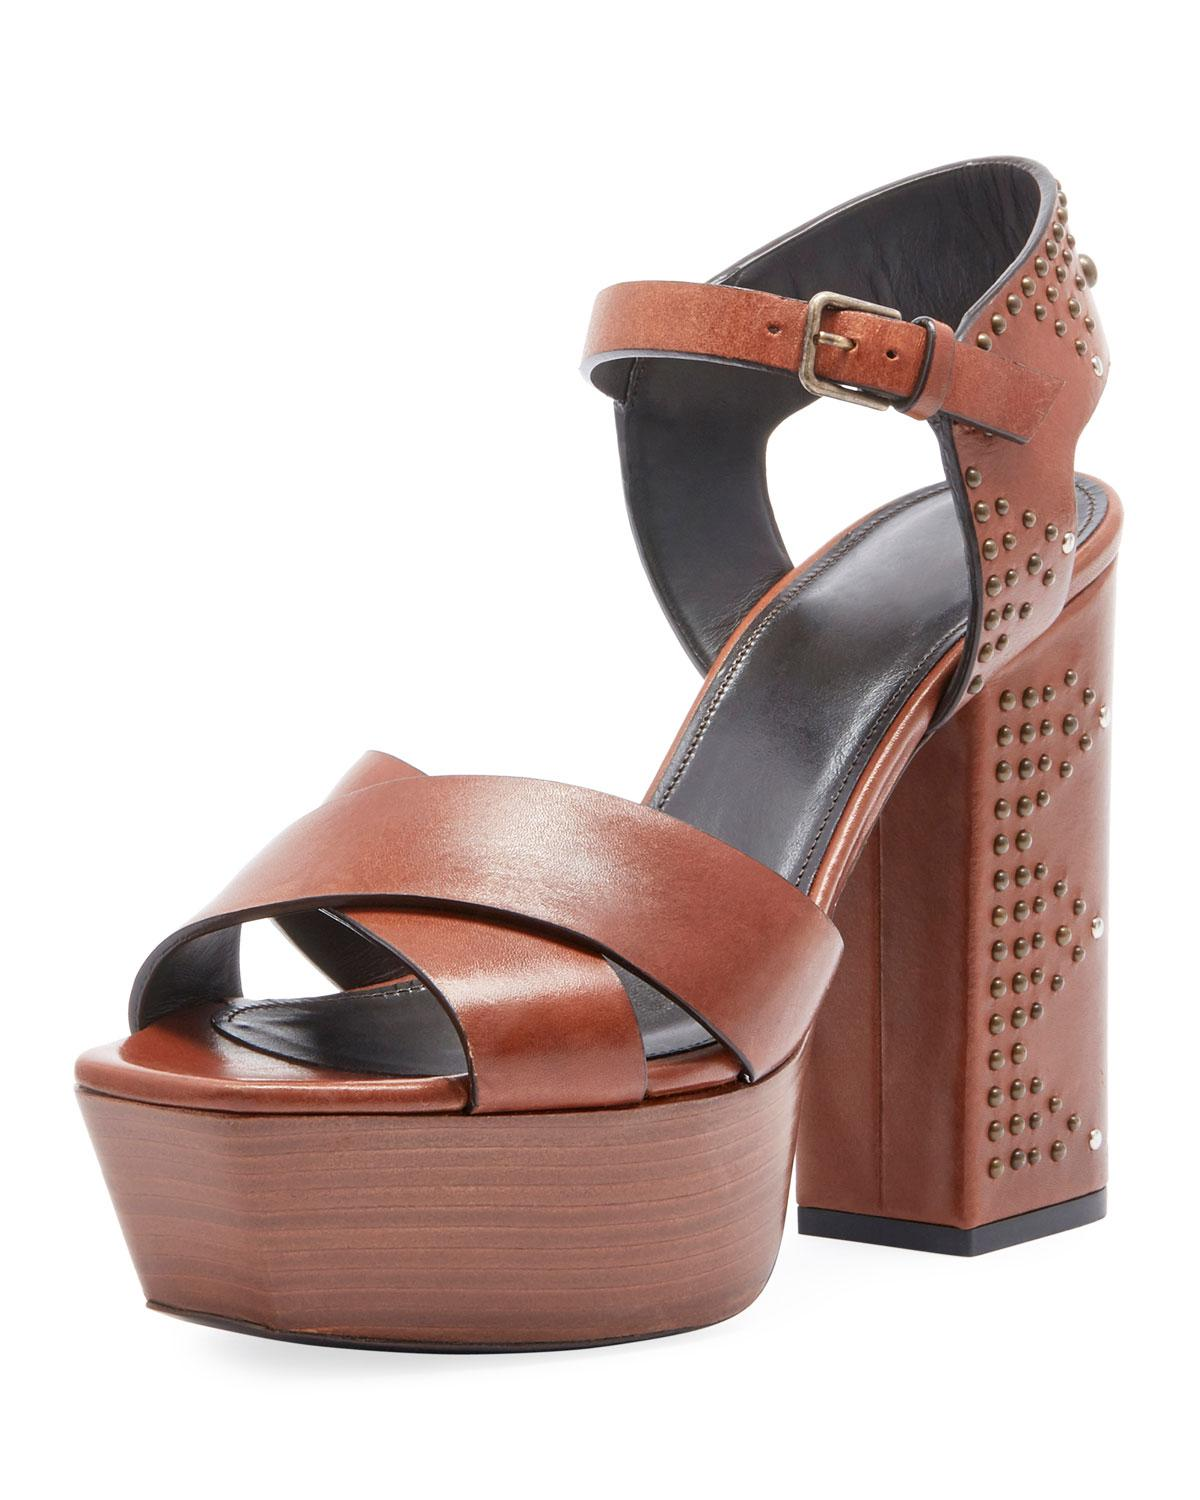 cf8dd693c8f Lyst - Saint Laurent Farrah Studded Leather Platform Sandal in Brown ...